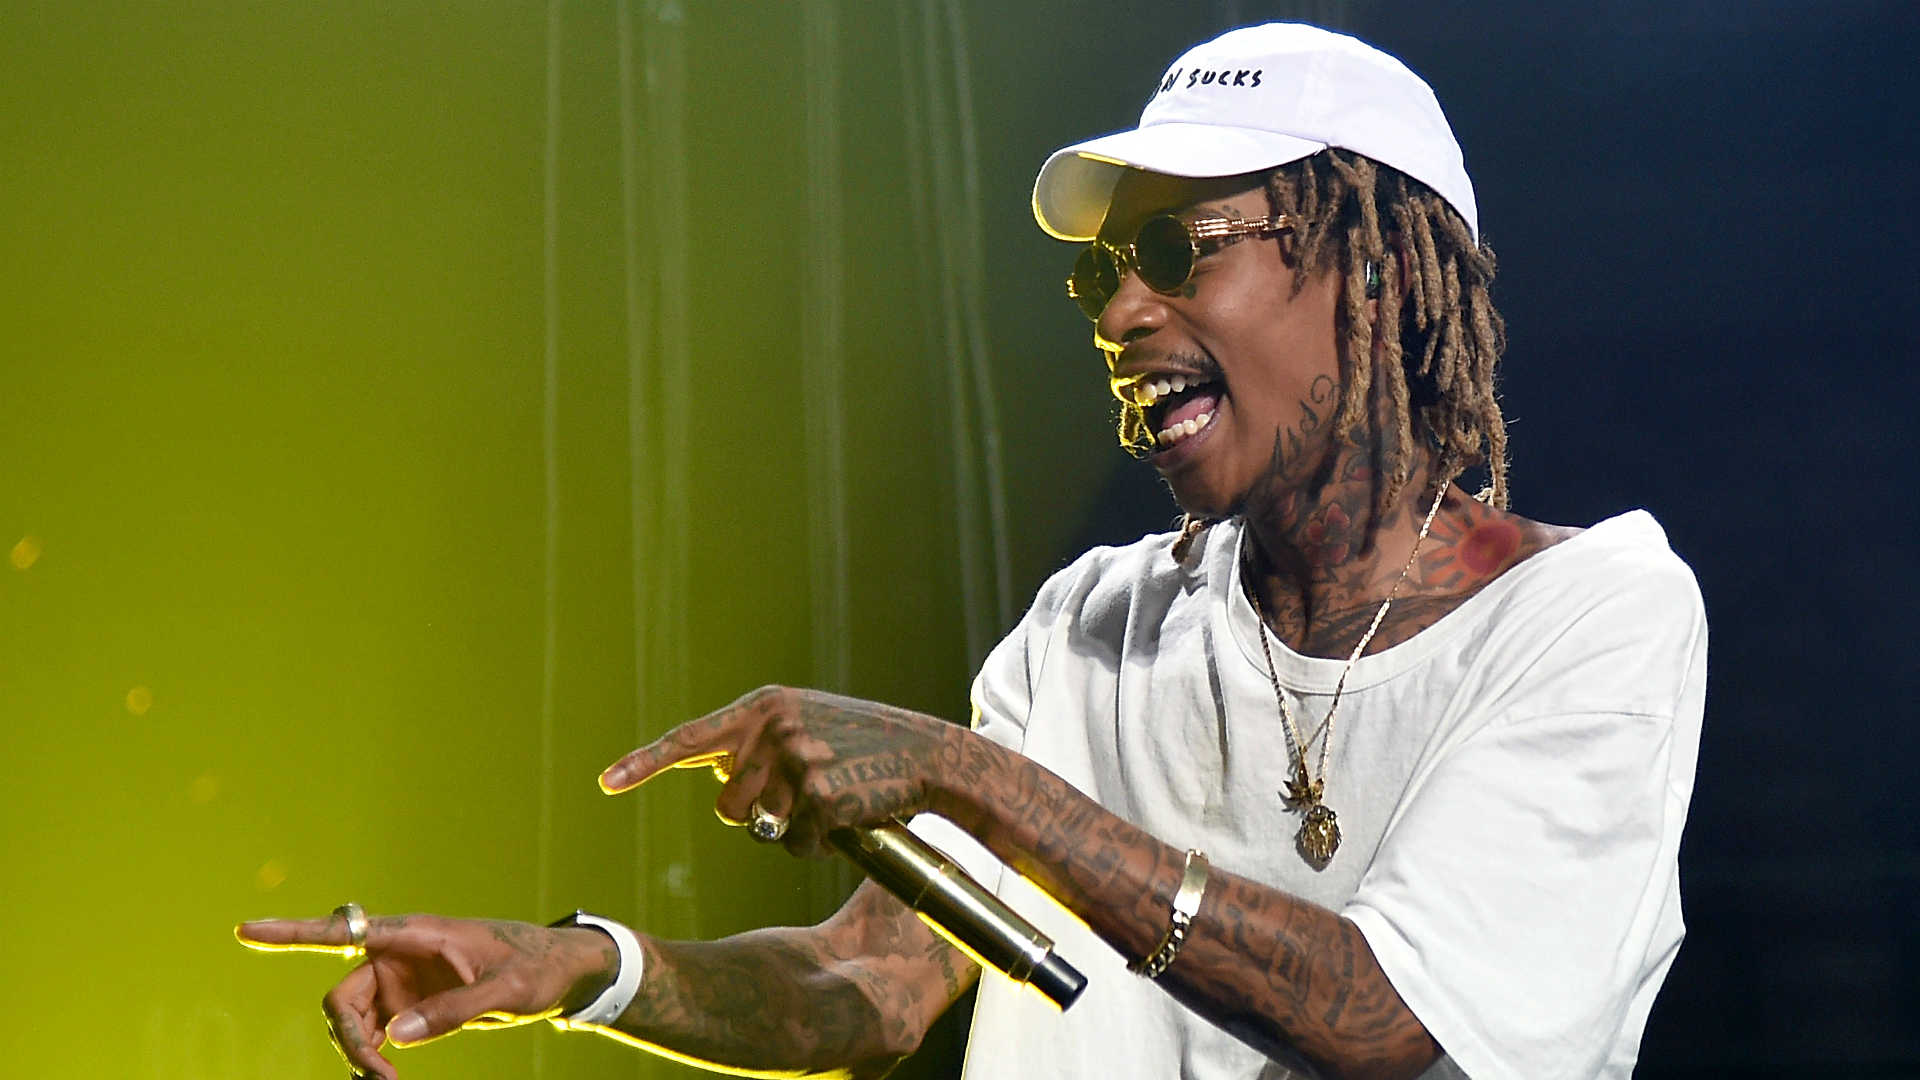 Rapper Wiz Khalifa Nabbed For Public Urination After Pitts Midnight Madness Basketball Event